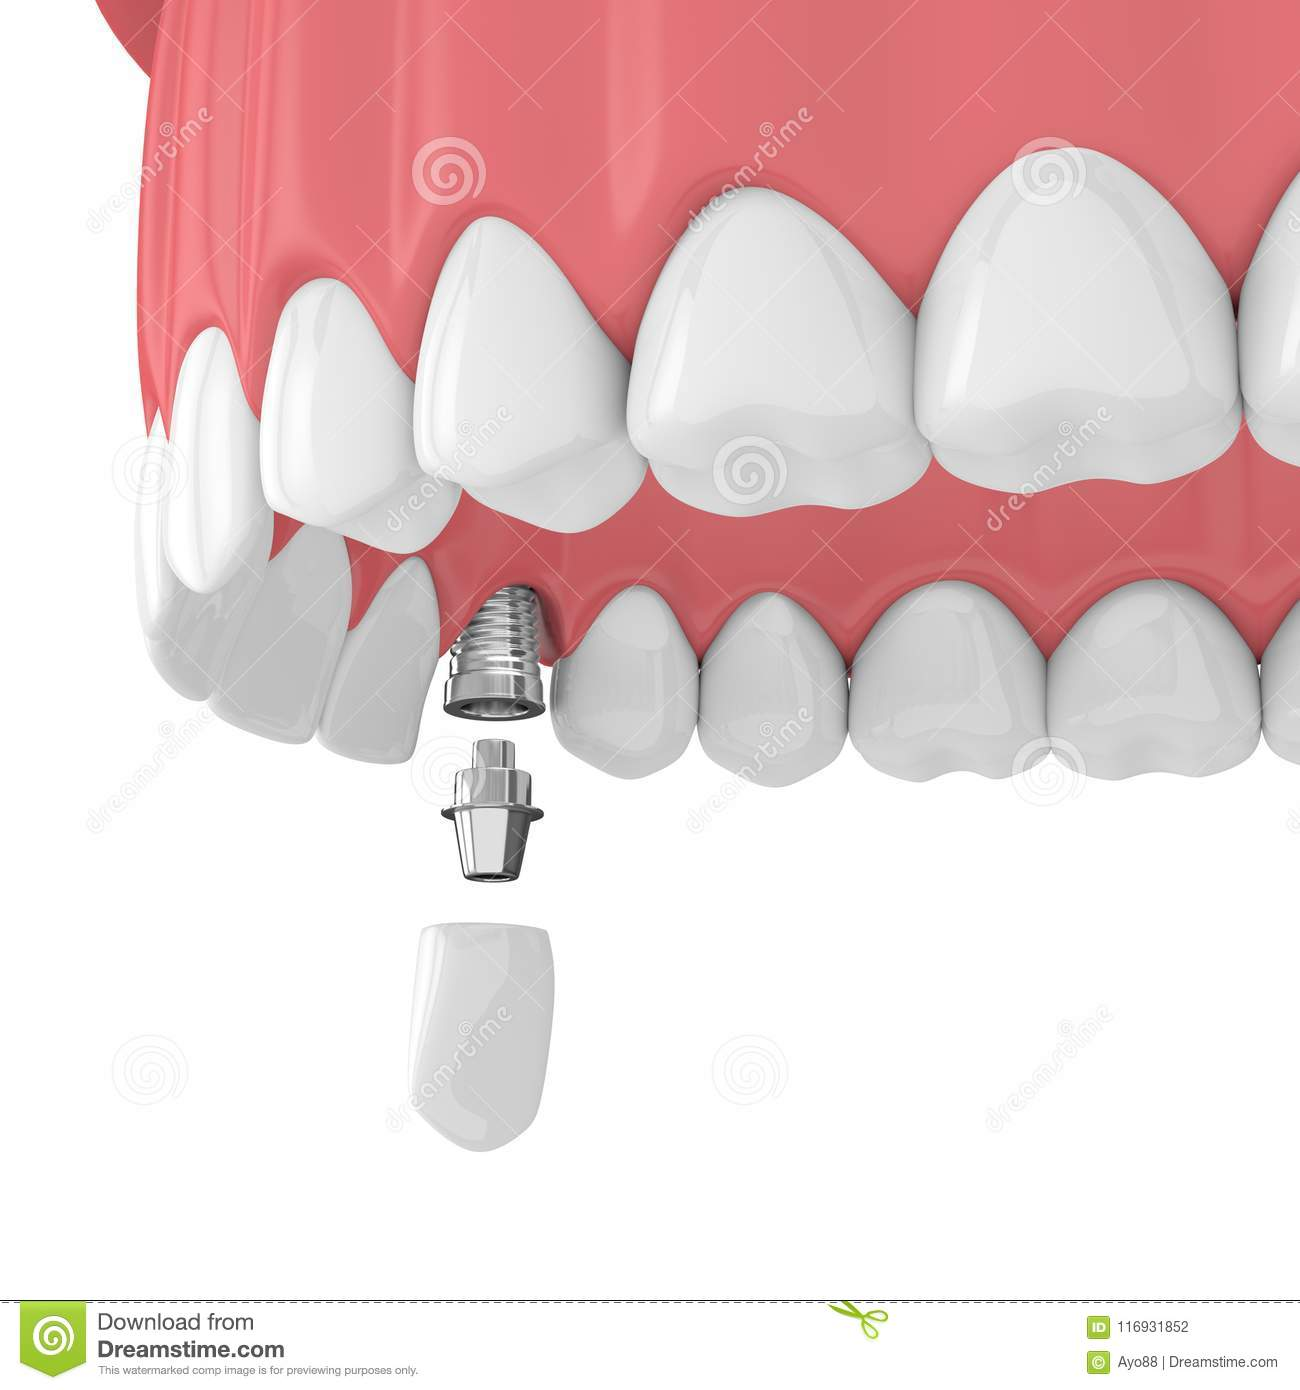 3d Render Of Upper Jaw With Teeth And Dental Canine Implant Stock ...